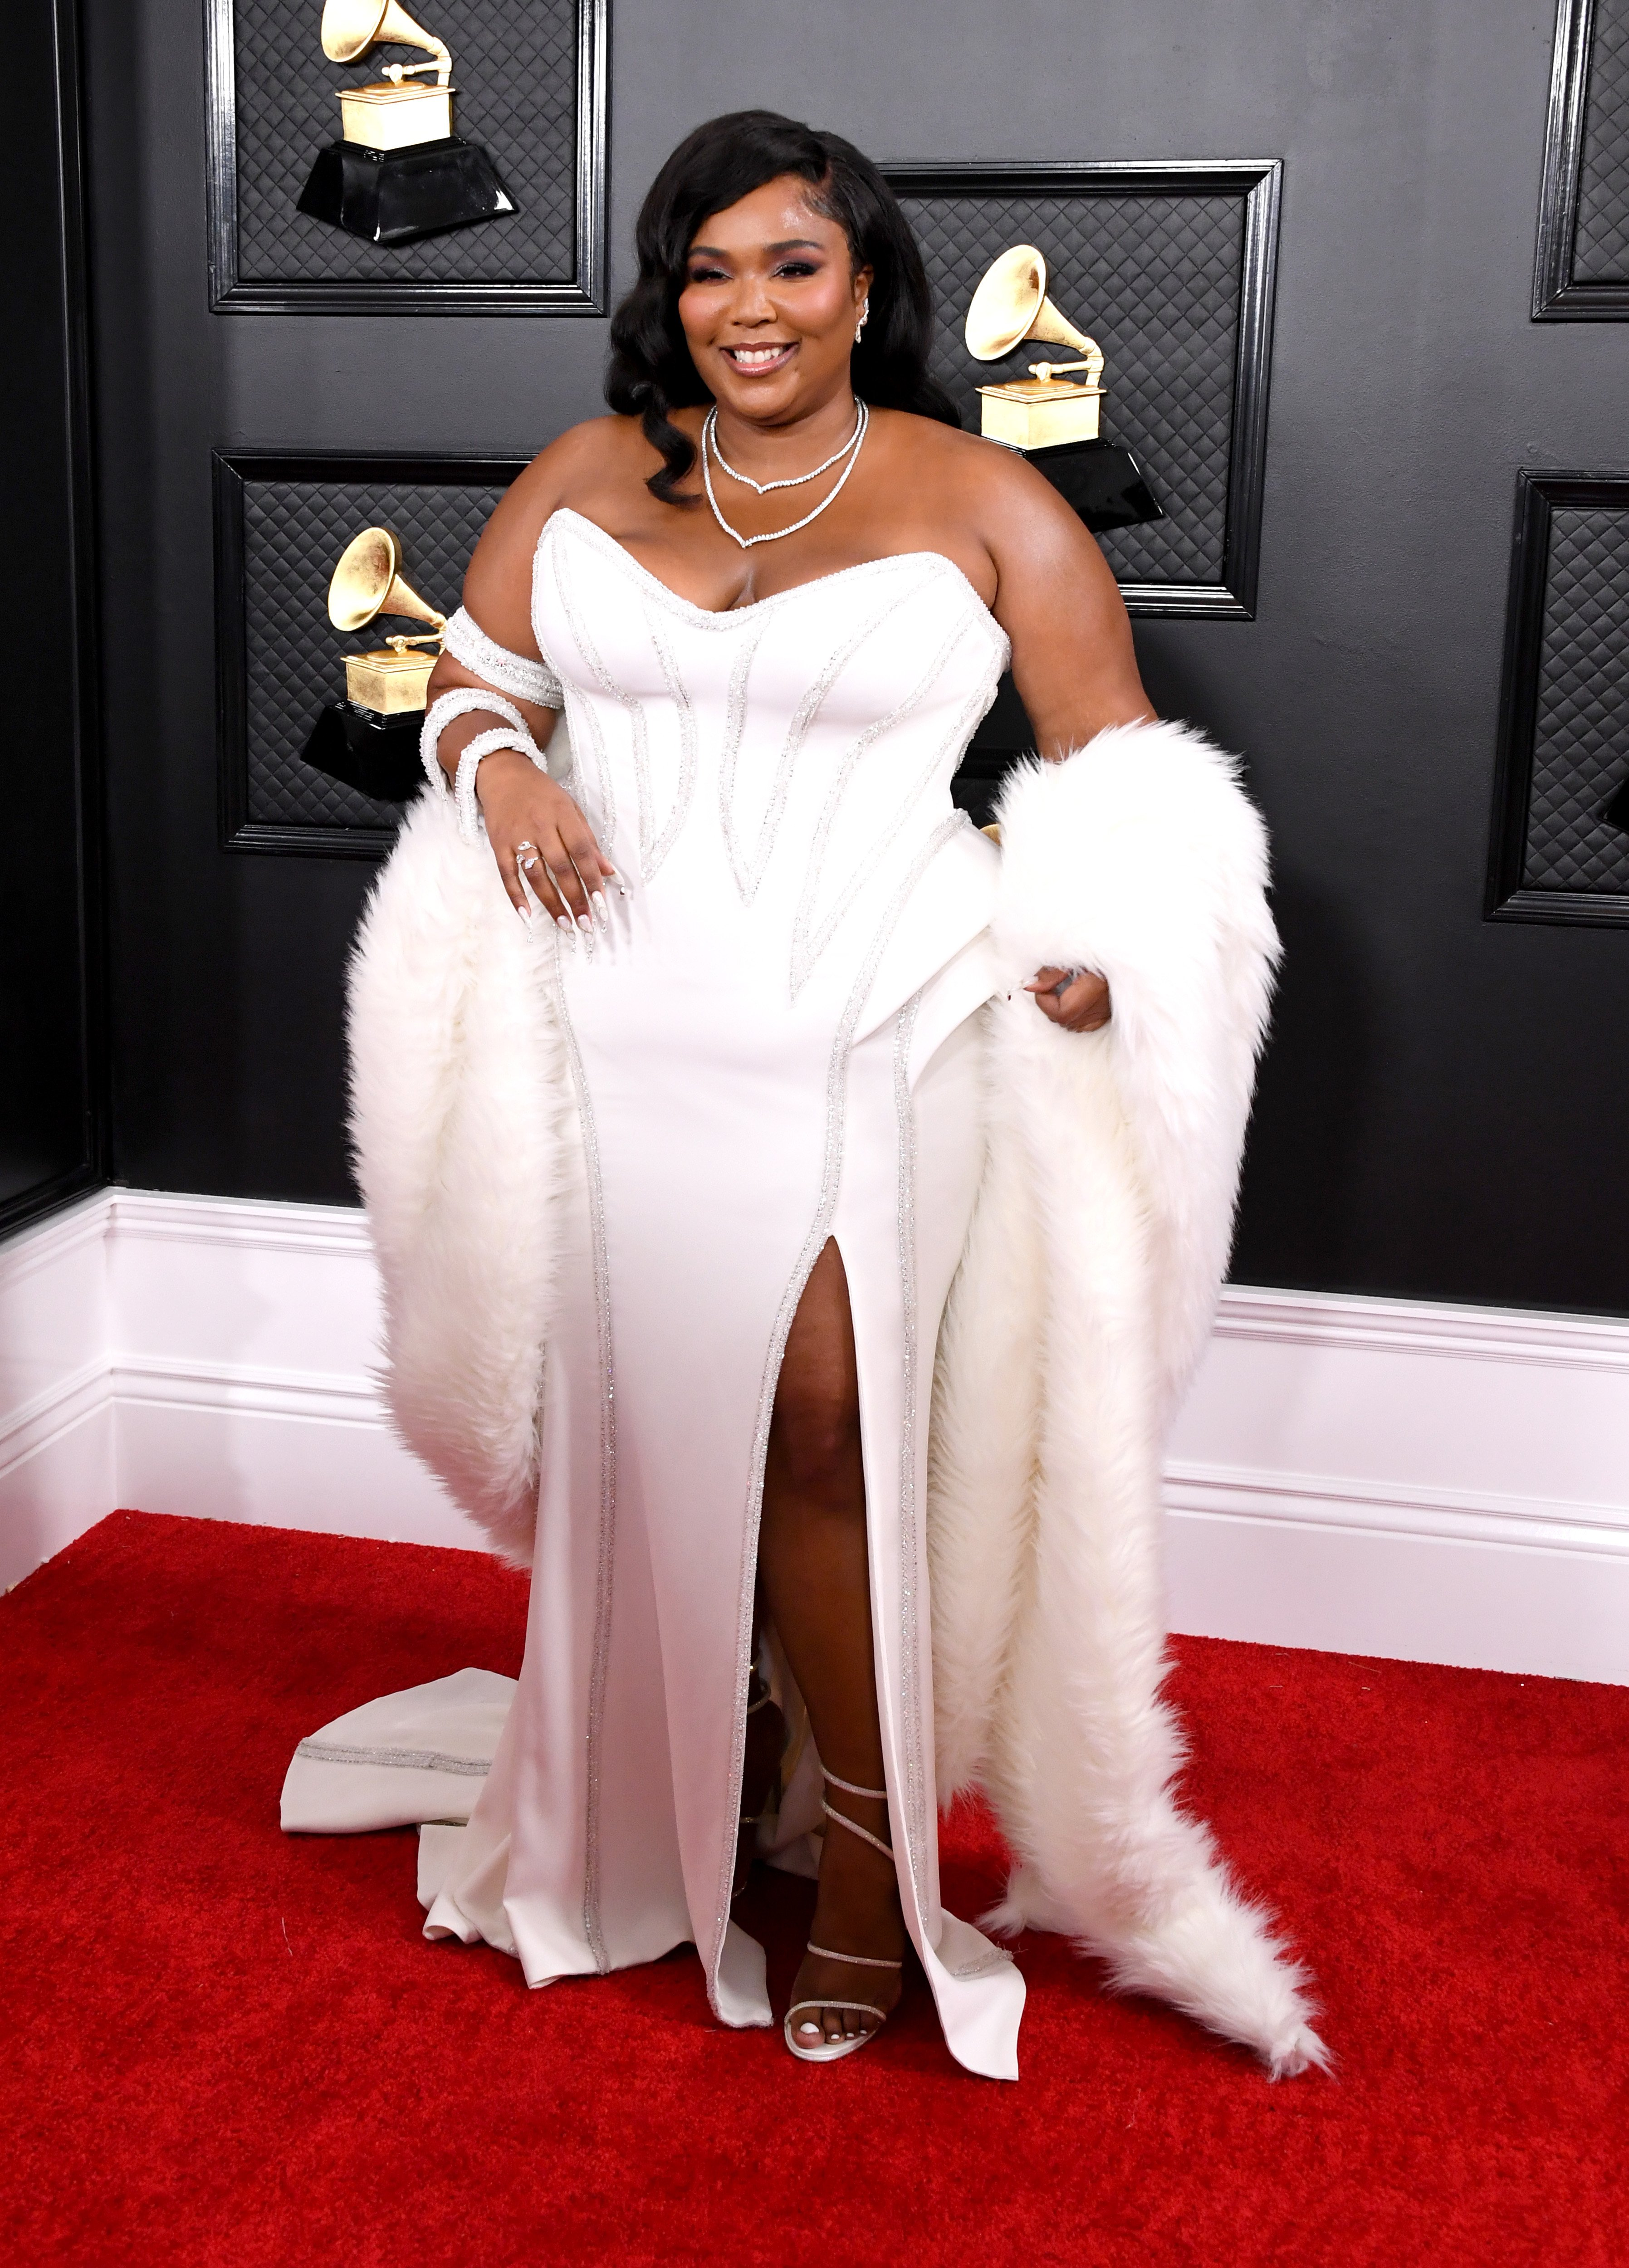 Lizzo attends the 62nd Annual GRAMMY Awards at Staples Center on January 26, 2020 in Los Angeles, California.   Source: Getty Images